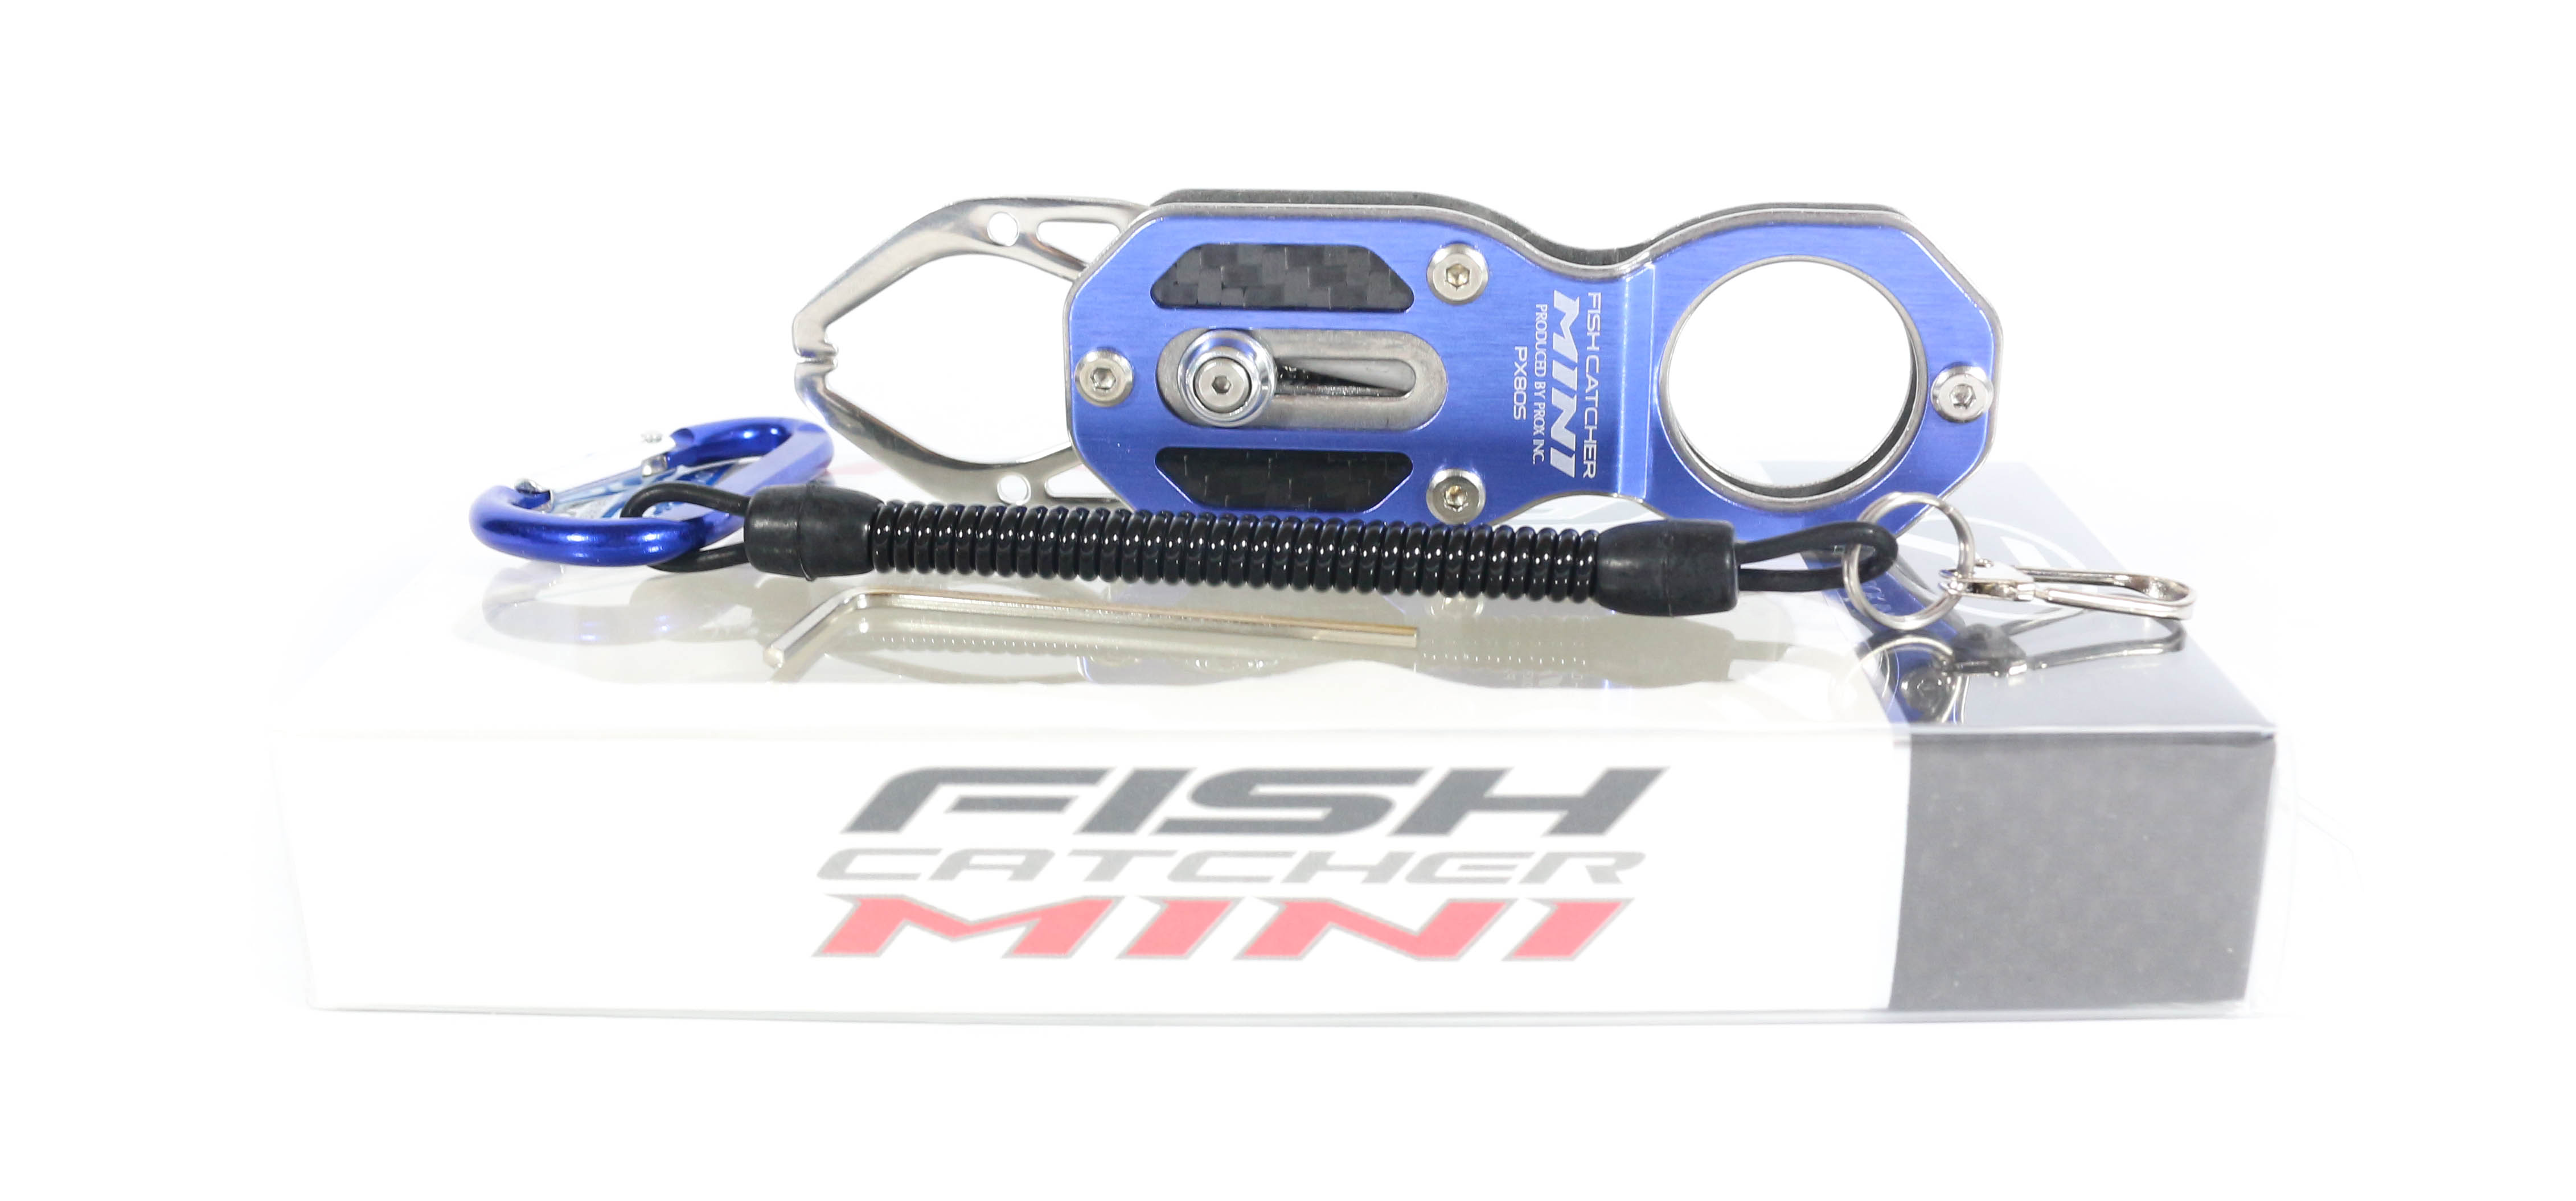 Prox PX805B Fish Catcher Mini Fish Grip Handling Tool Blue (4281)